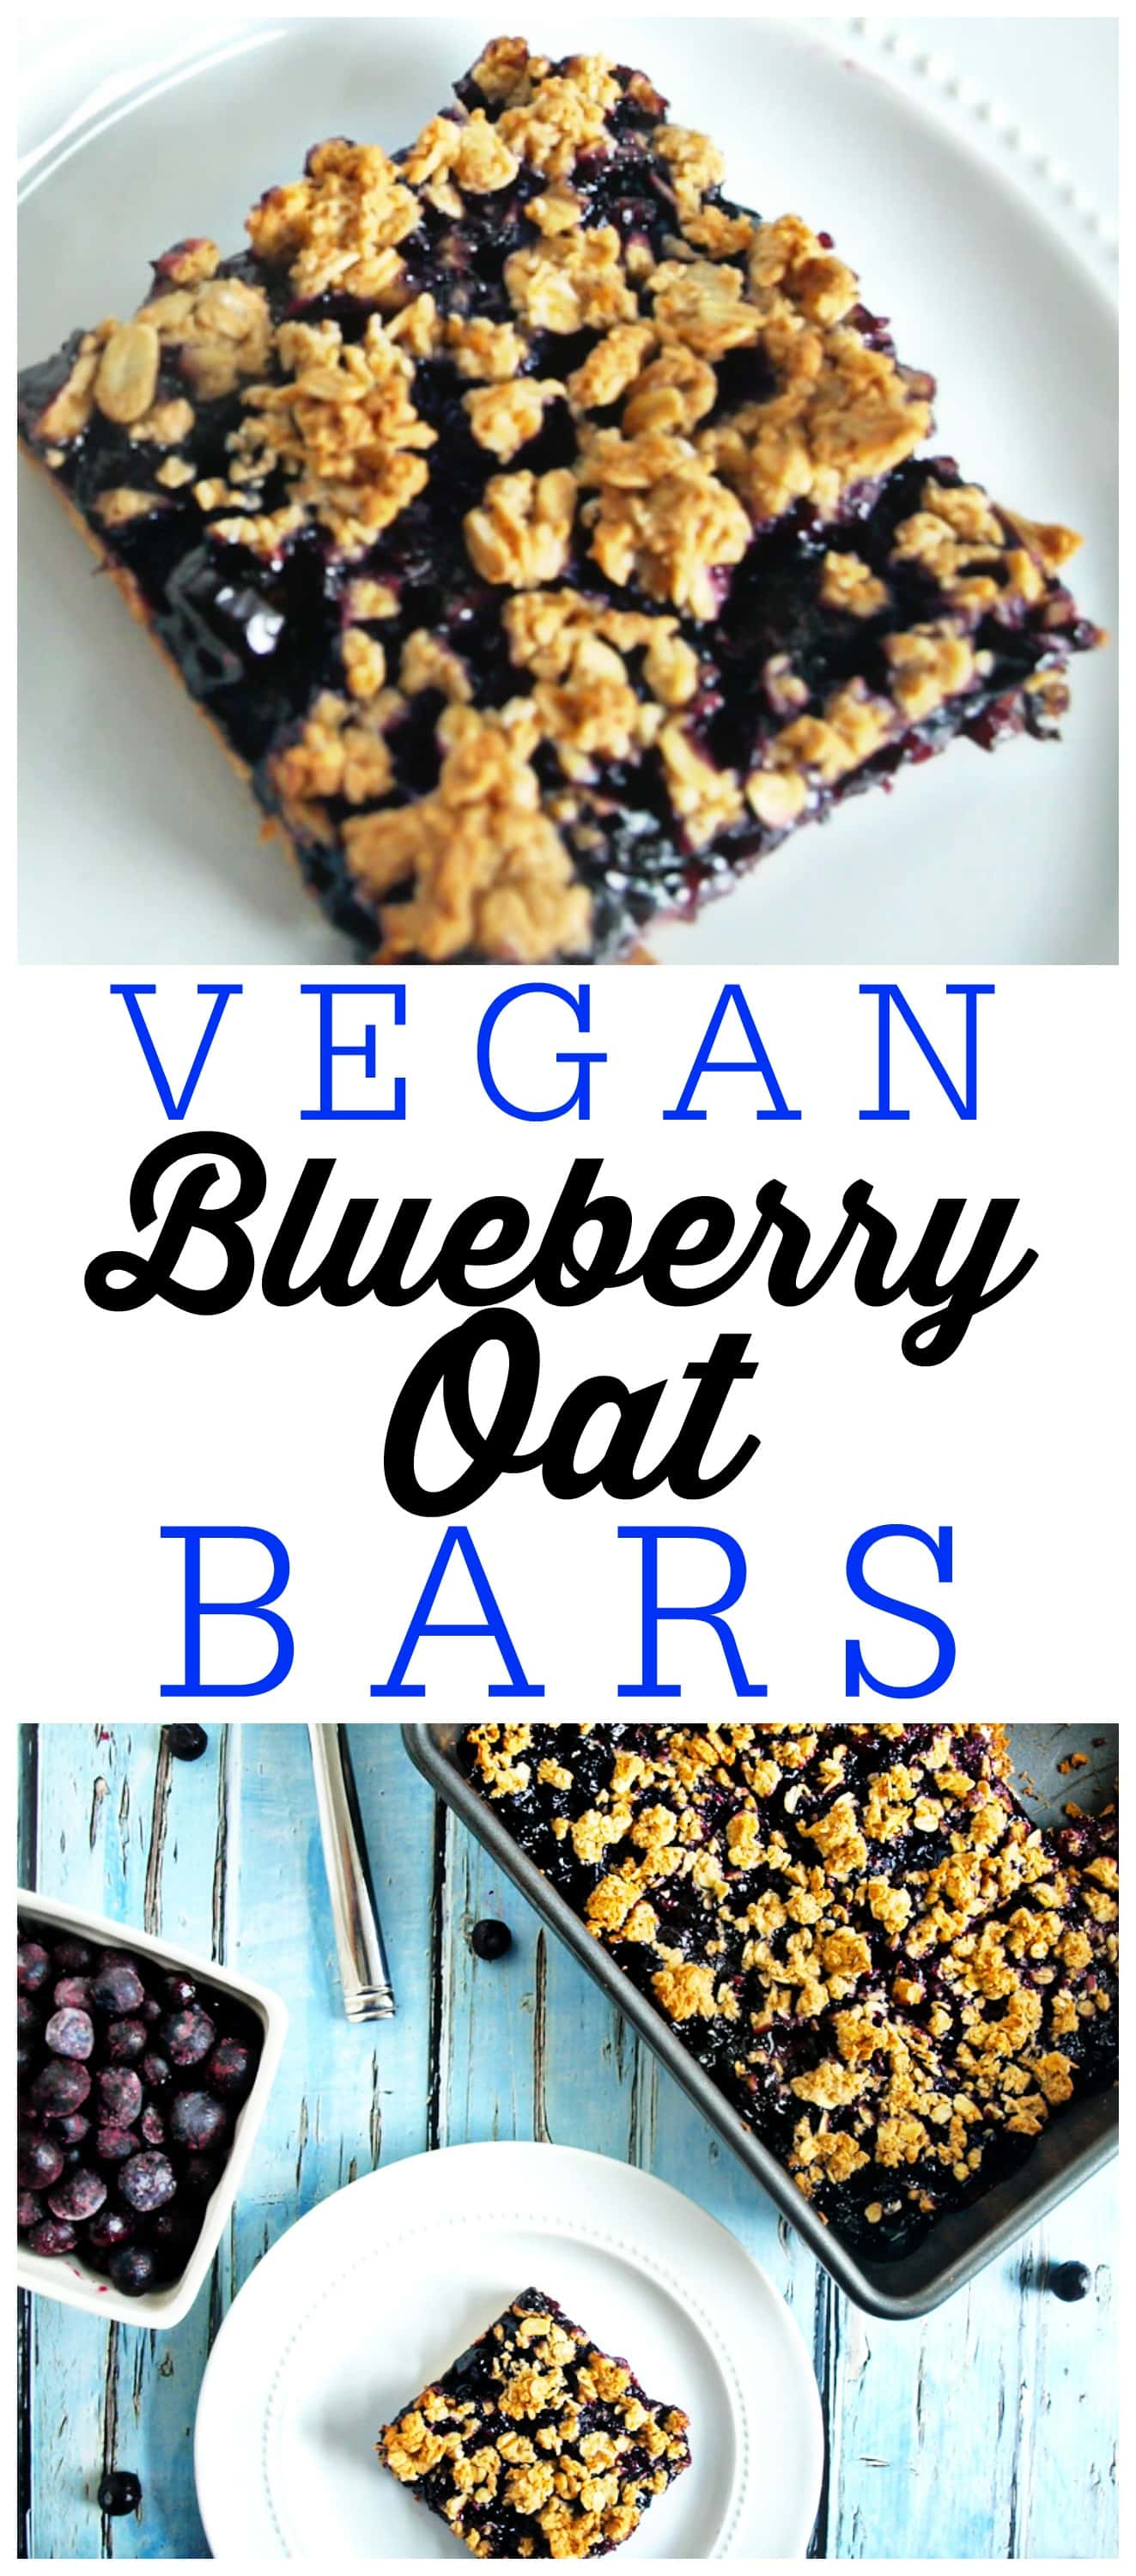 These Vegan Blueberry Oat Bars are a great recipe for a healthy breakfast, snack, or even desserts!